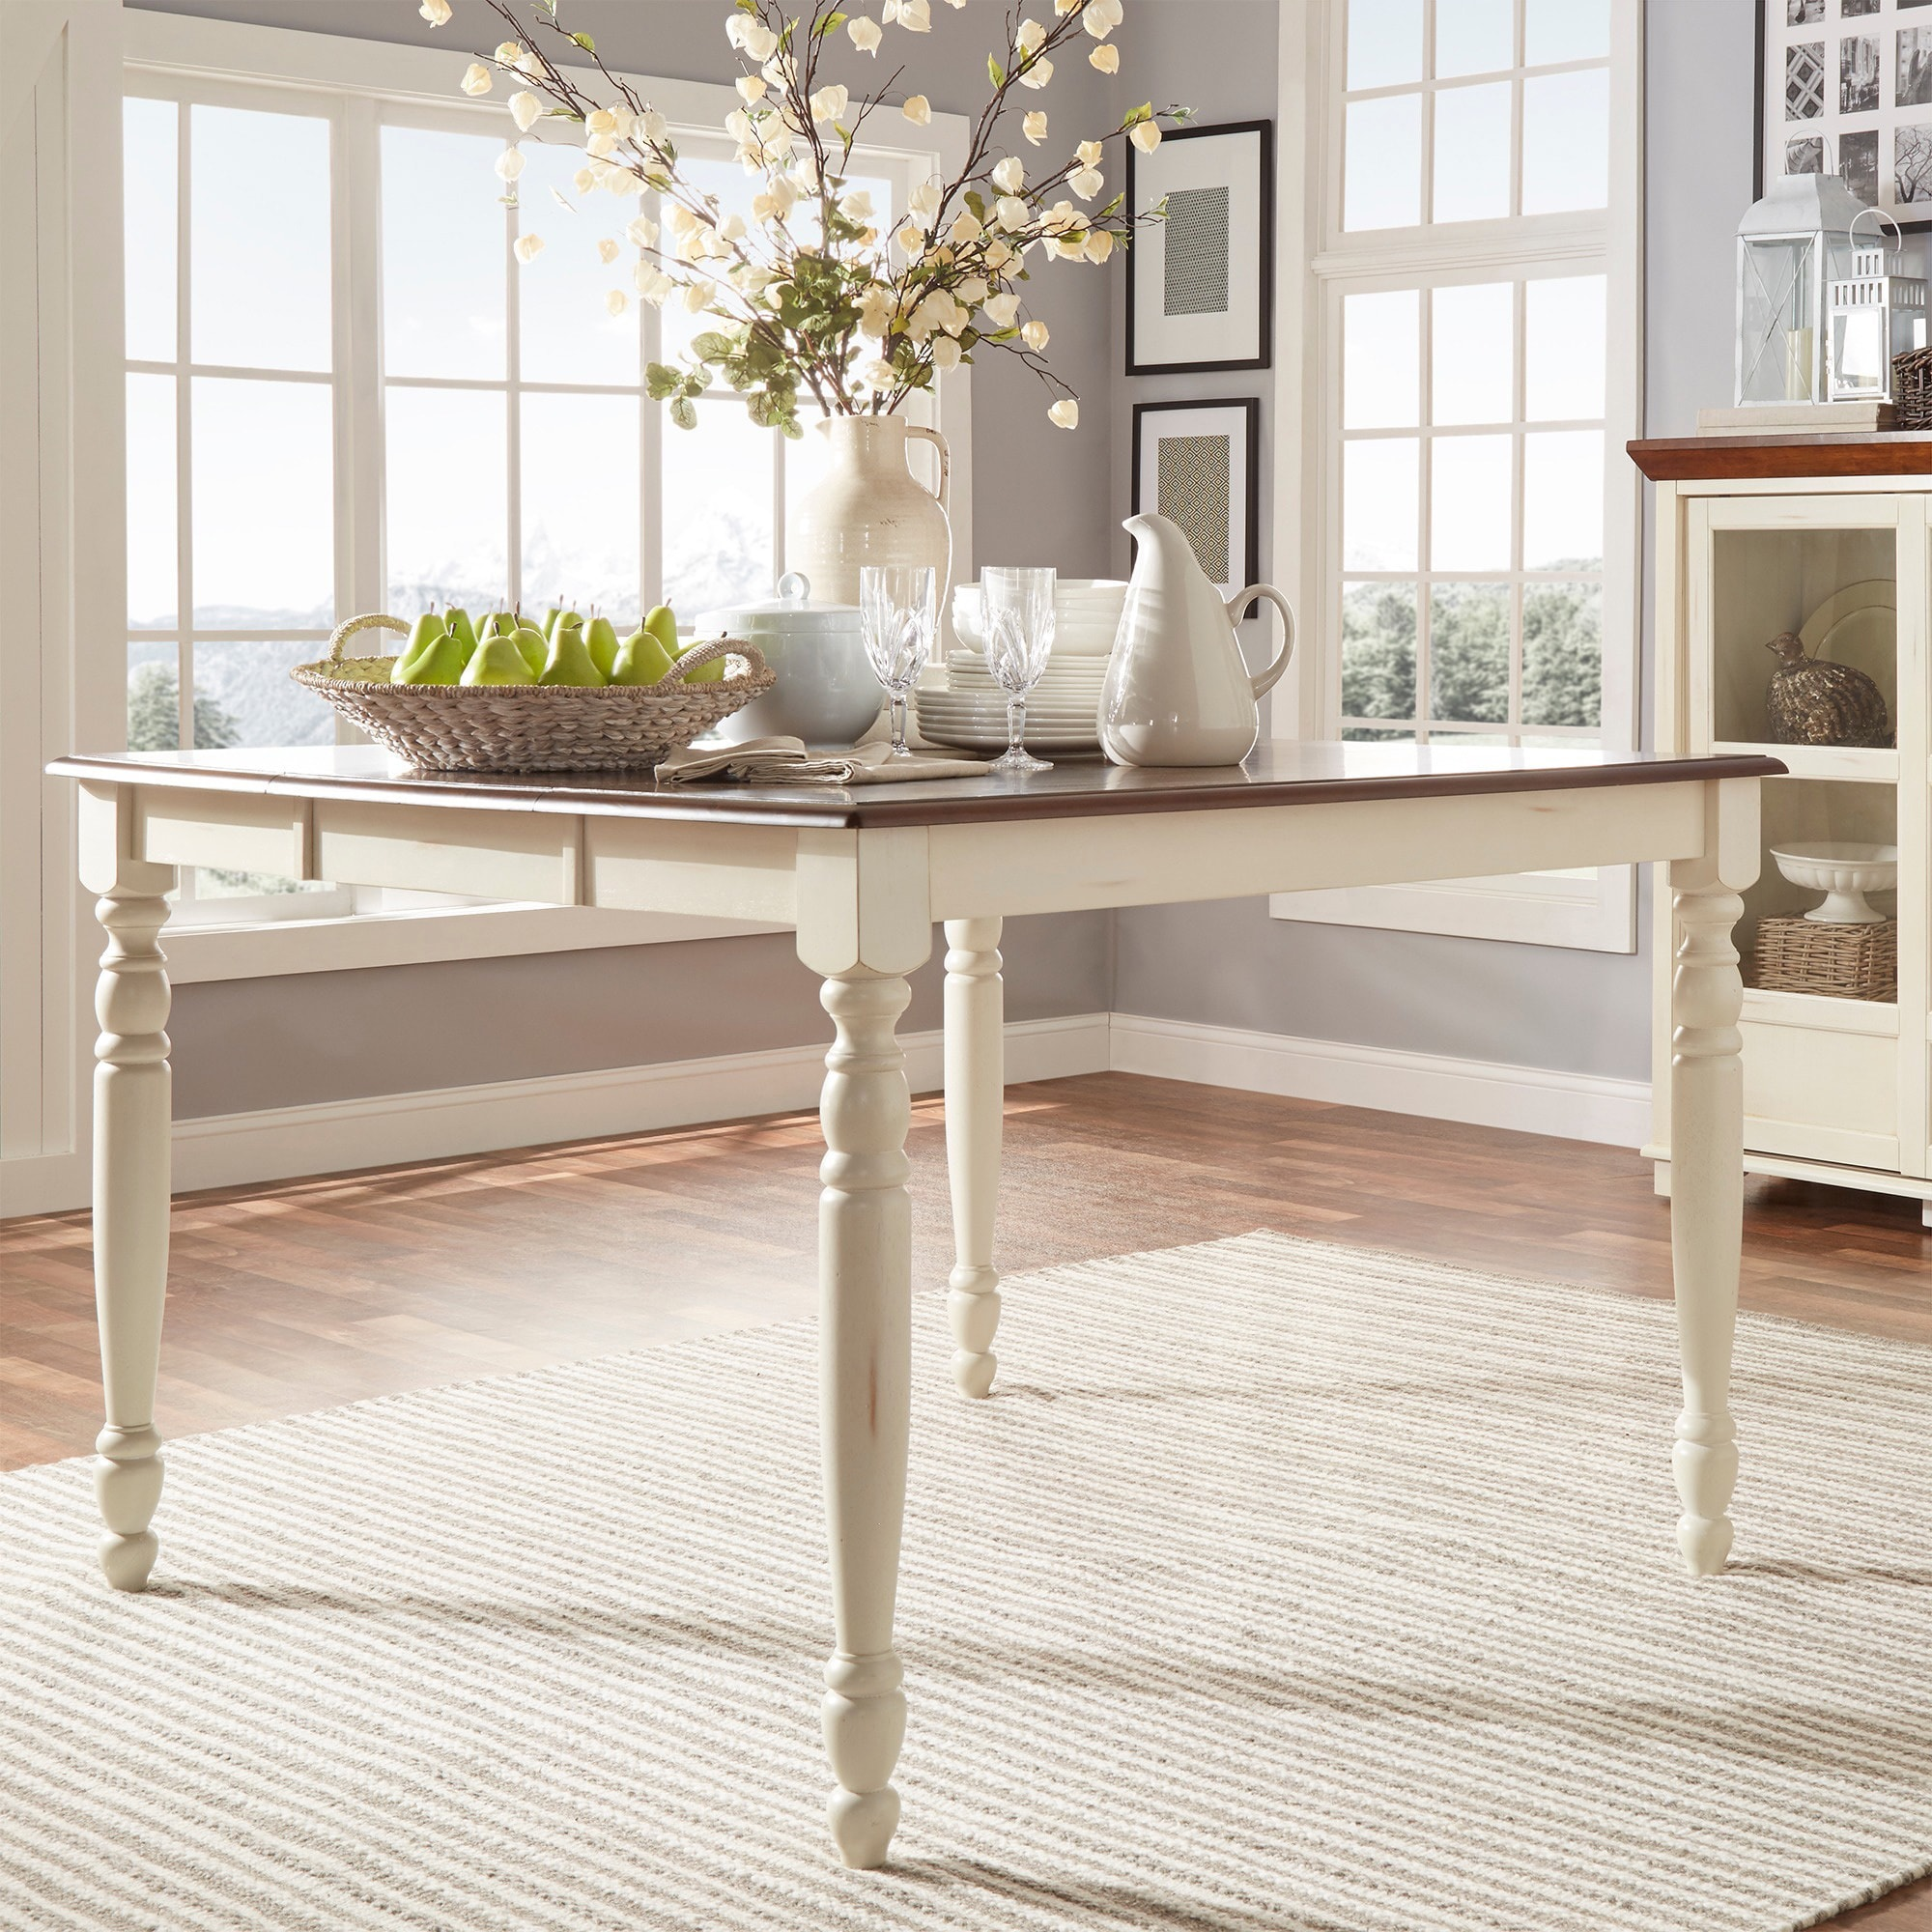 Shop mackenzie country counter height extending dining table by inspire q classic on sale free shipping today overstock com 9366808